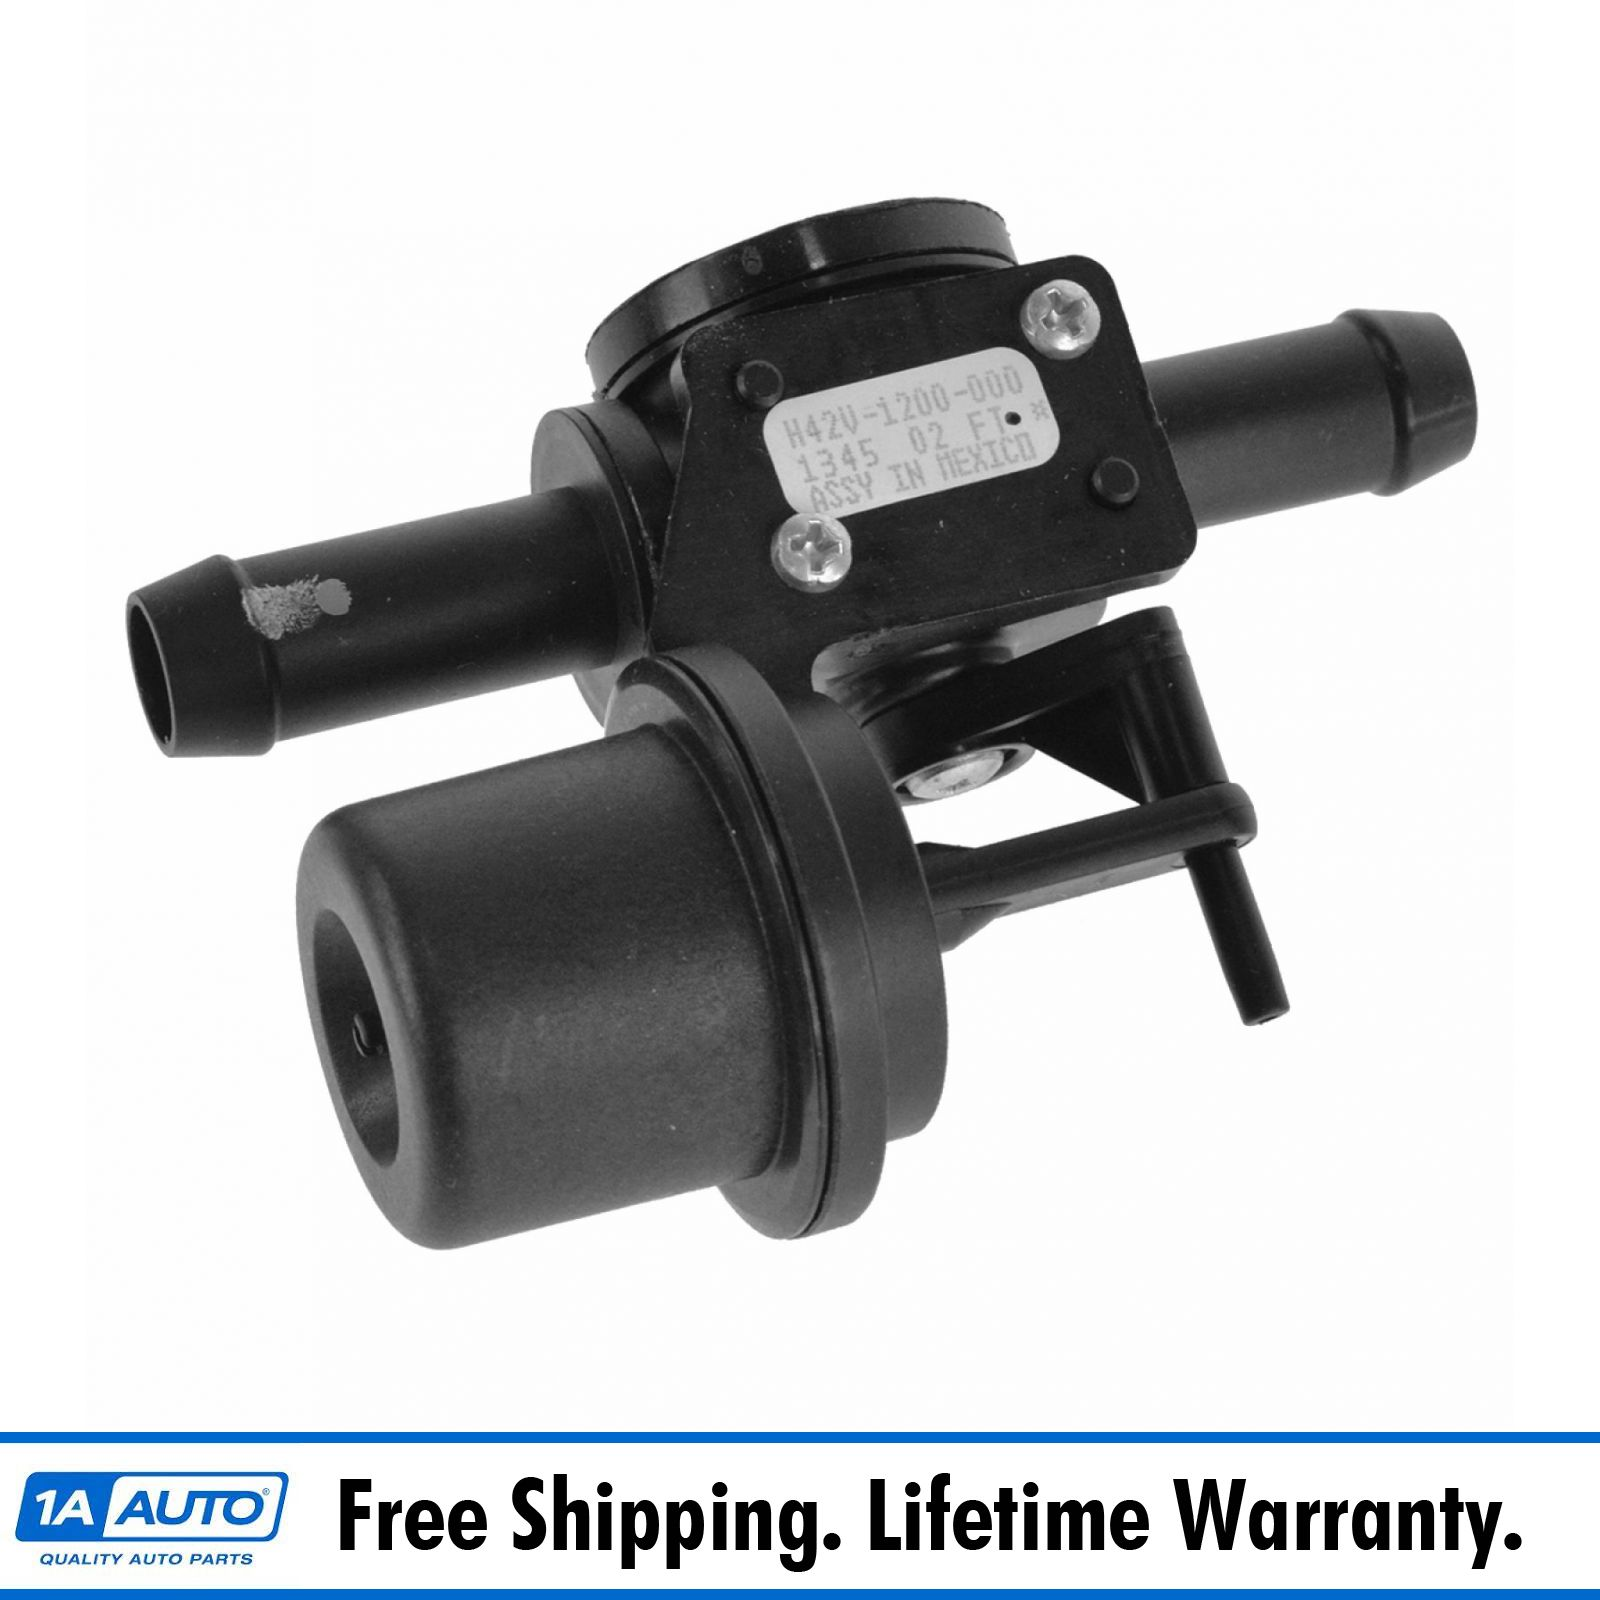 Heater Control Valve >> Details About Motorcraft Heater Control Valve For Ford Explorer Ranger Mercury Mountaineer